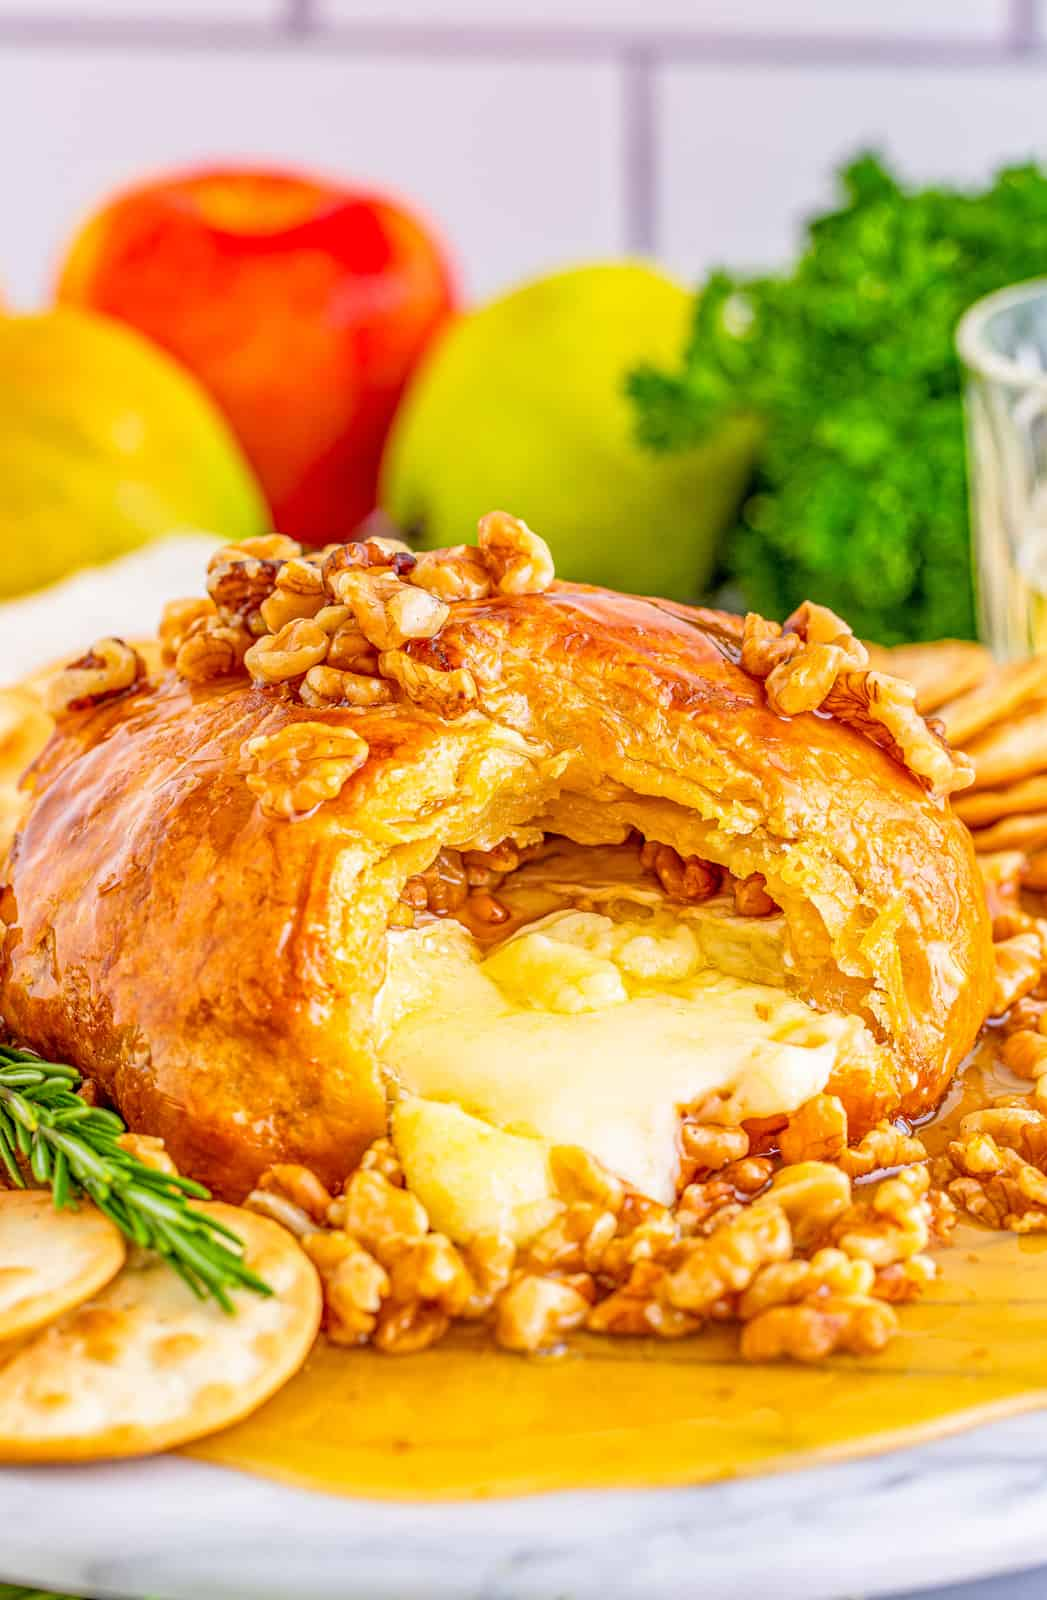 Honey Walnut Baked Brie Recipe with cheese oozing out of the center.